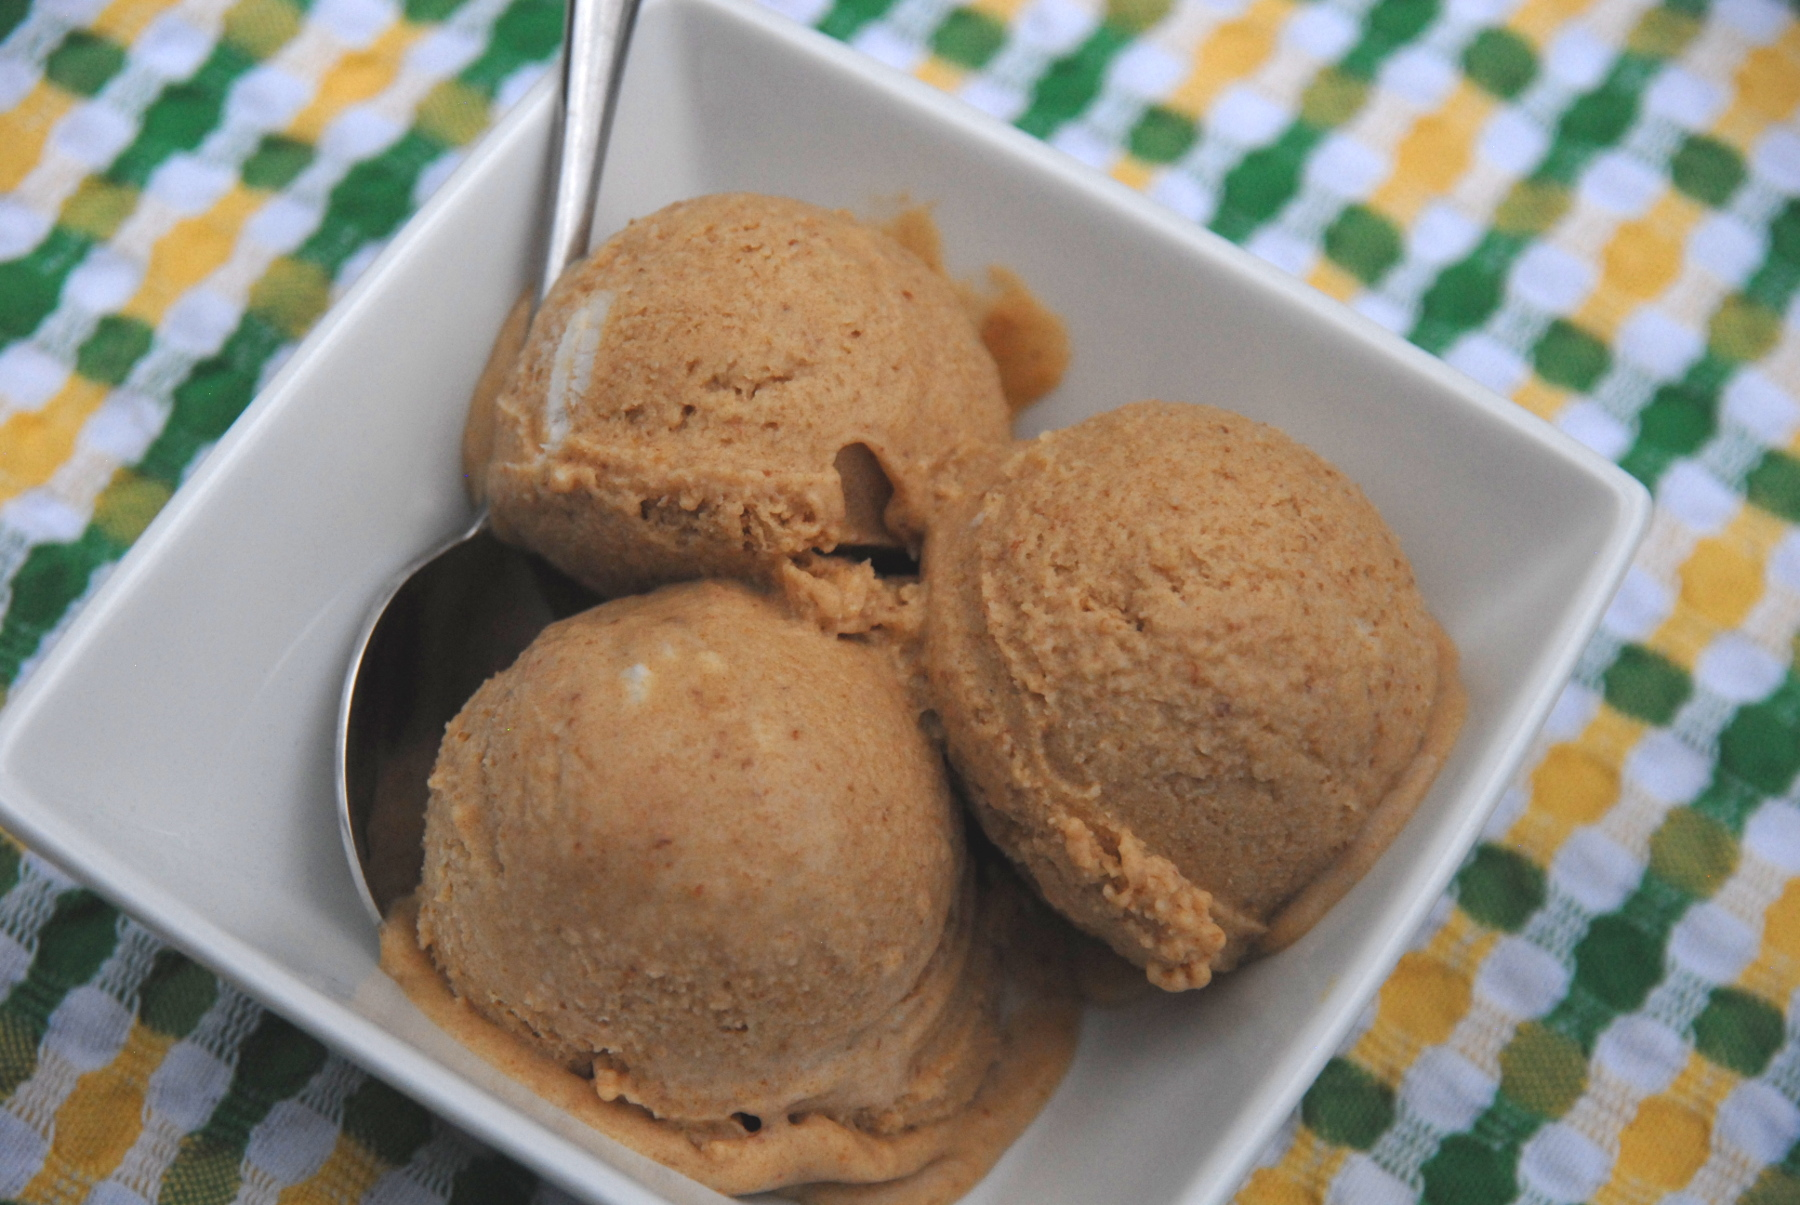 Pomegranate molasses and date ice cream